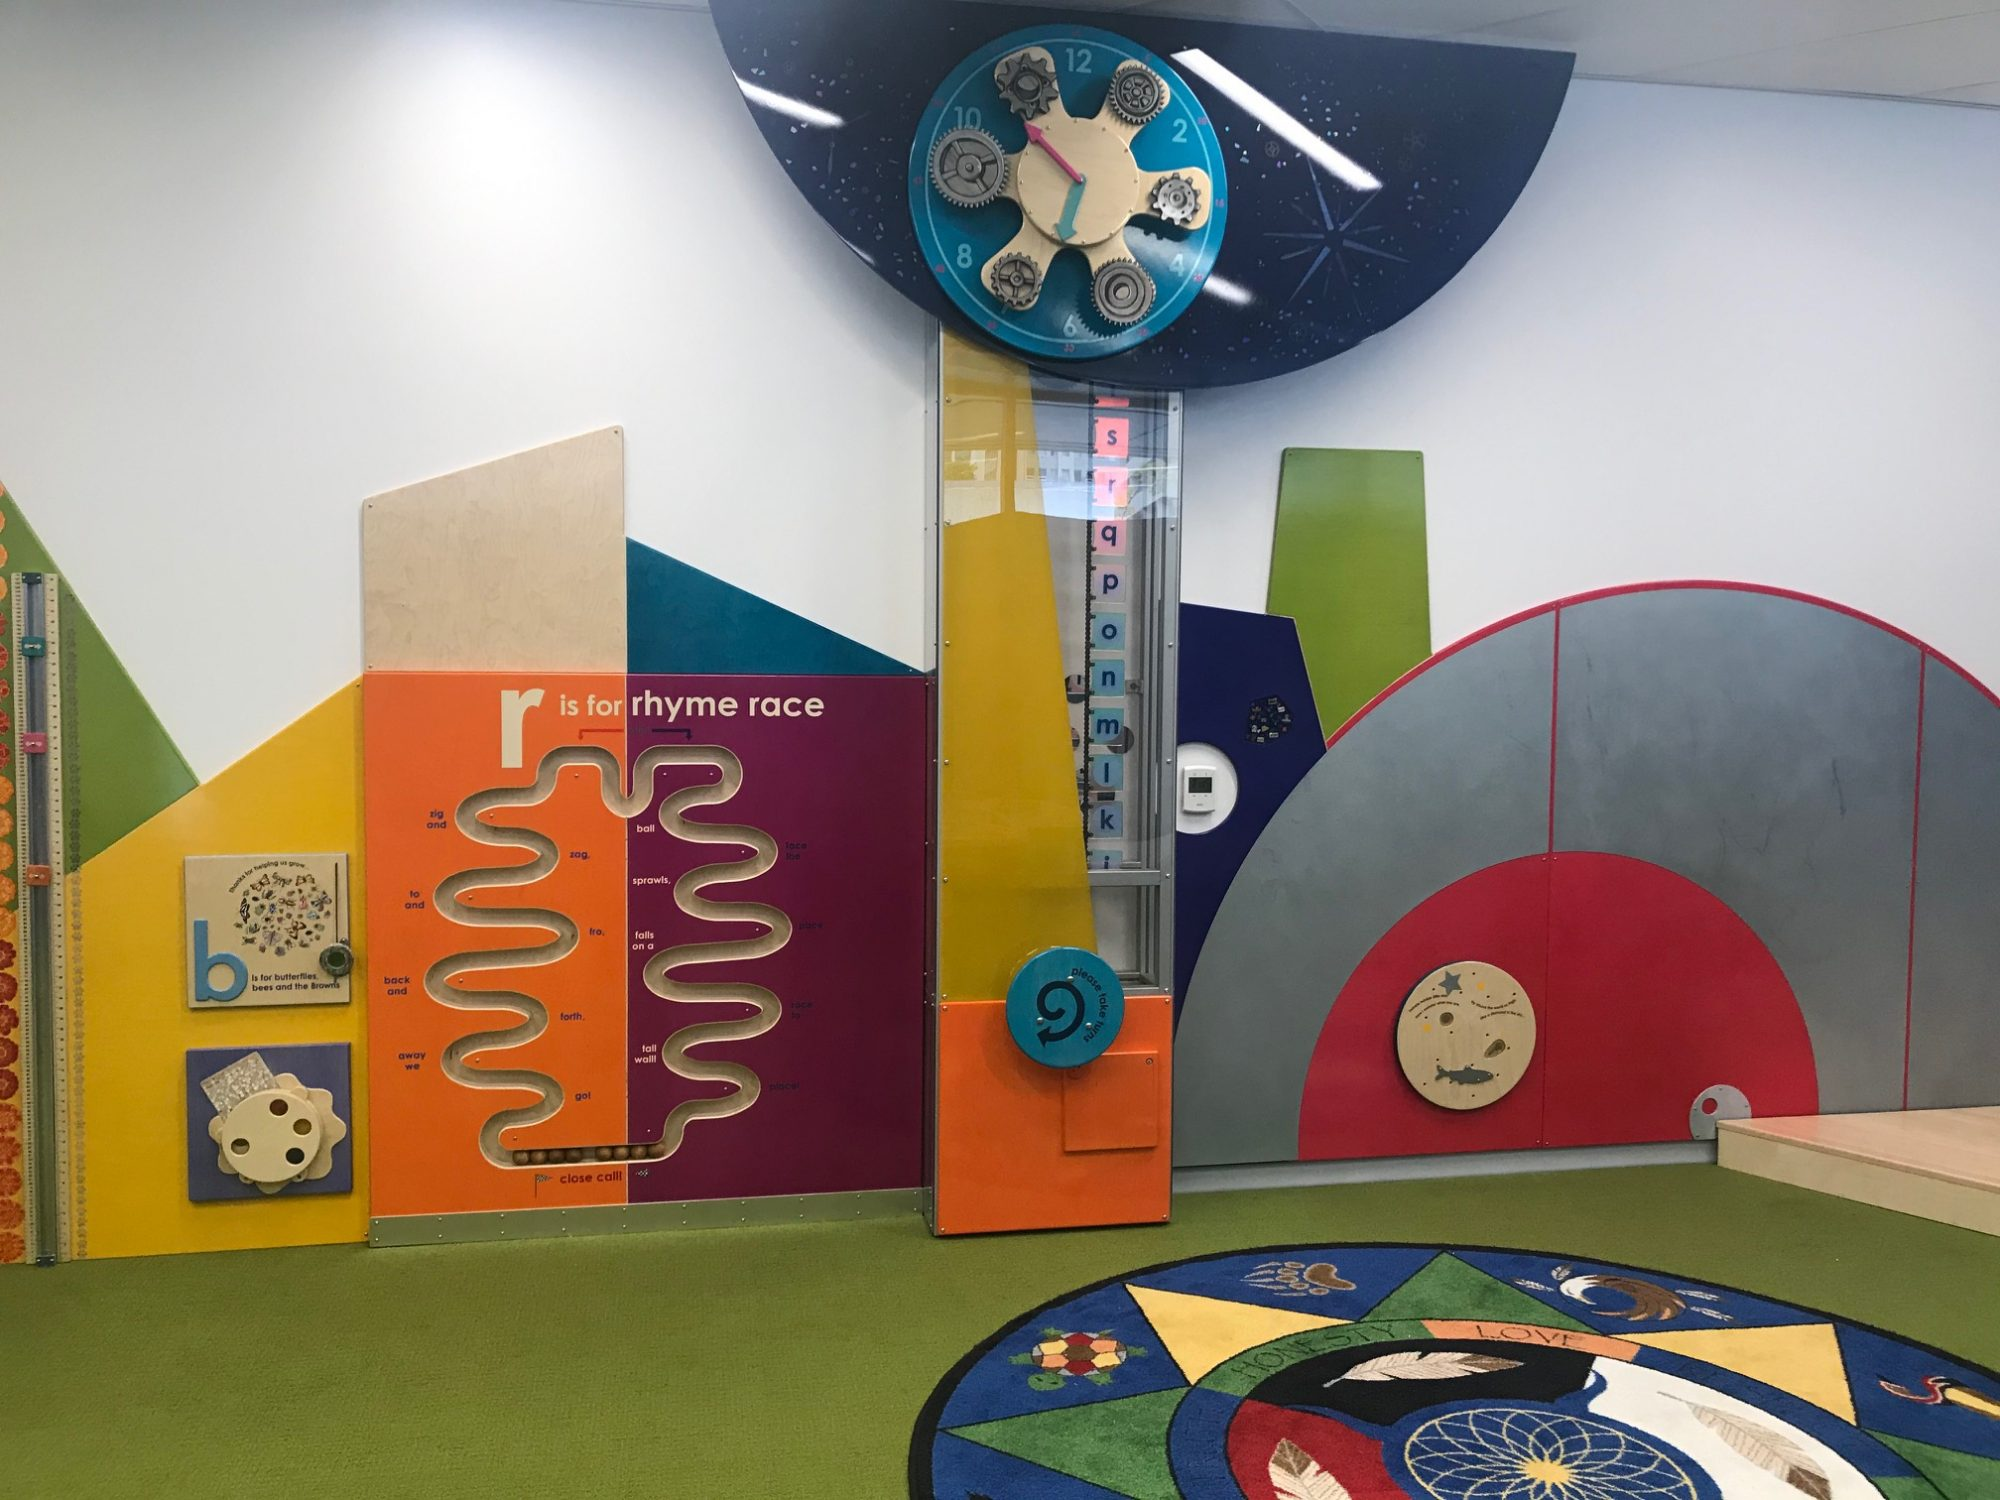 Children's play area at the Stanley A, Milner Library, Edmonton,